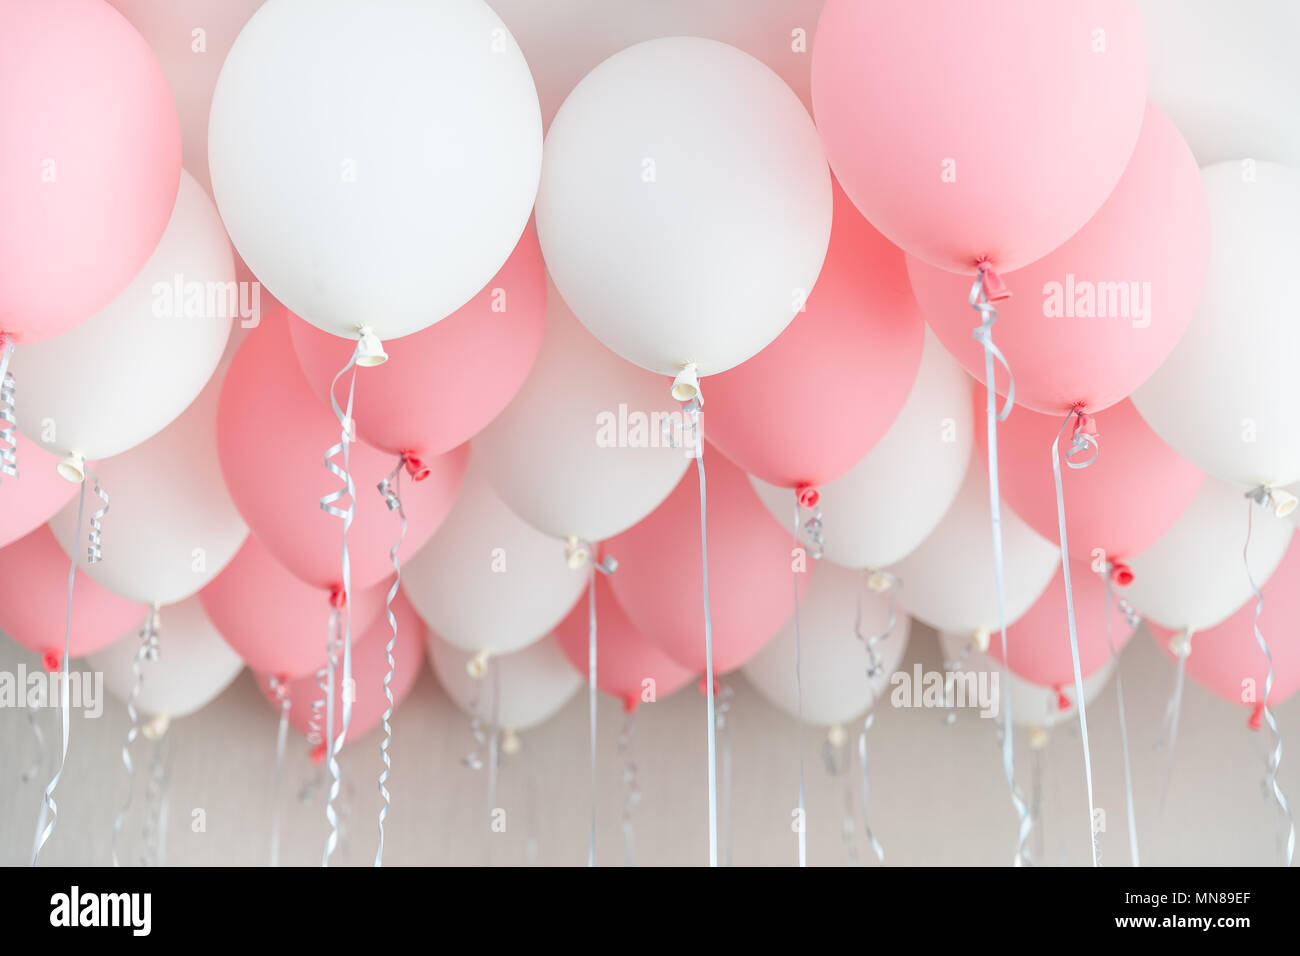 Colourful Balloons Pink White Streamers Helium Ballon Floating In Birthday Party Concept Balloon Of Love And Valentine